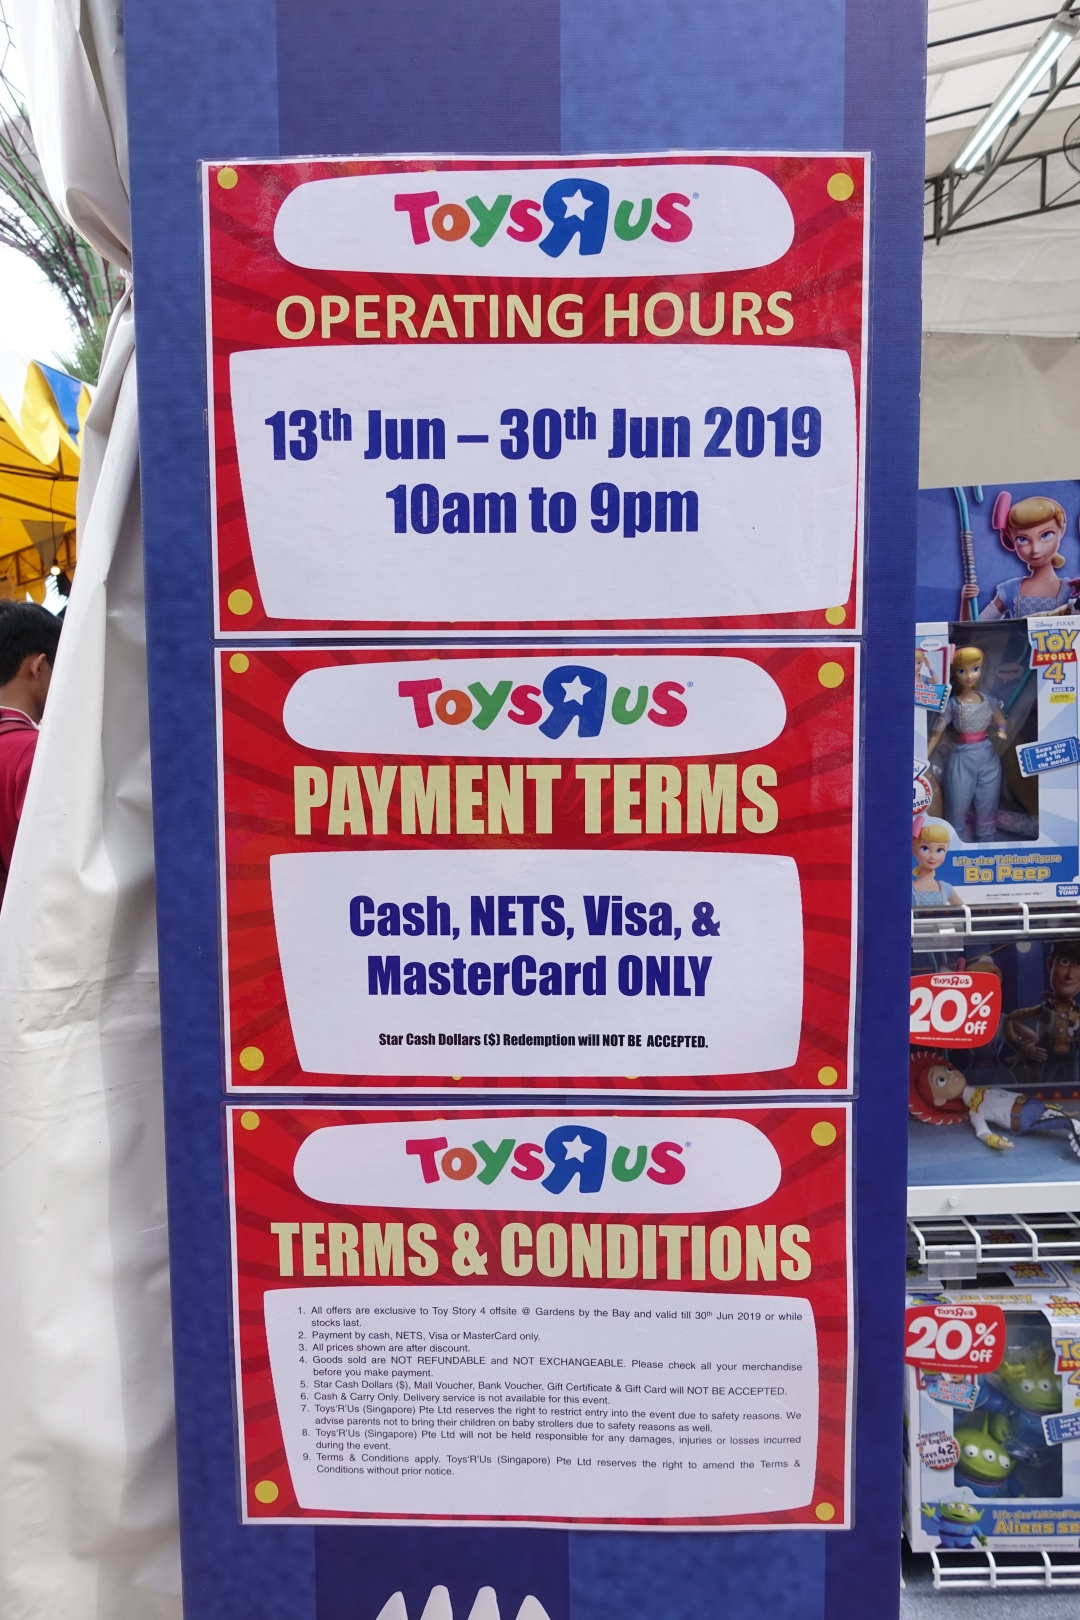 Opening Hours Toys R Us | Children's Festival at Gardens by the Bay | joanne-khoo.com